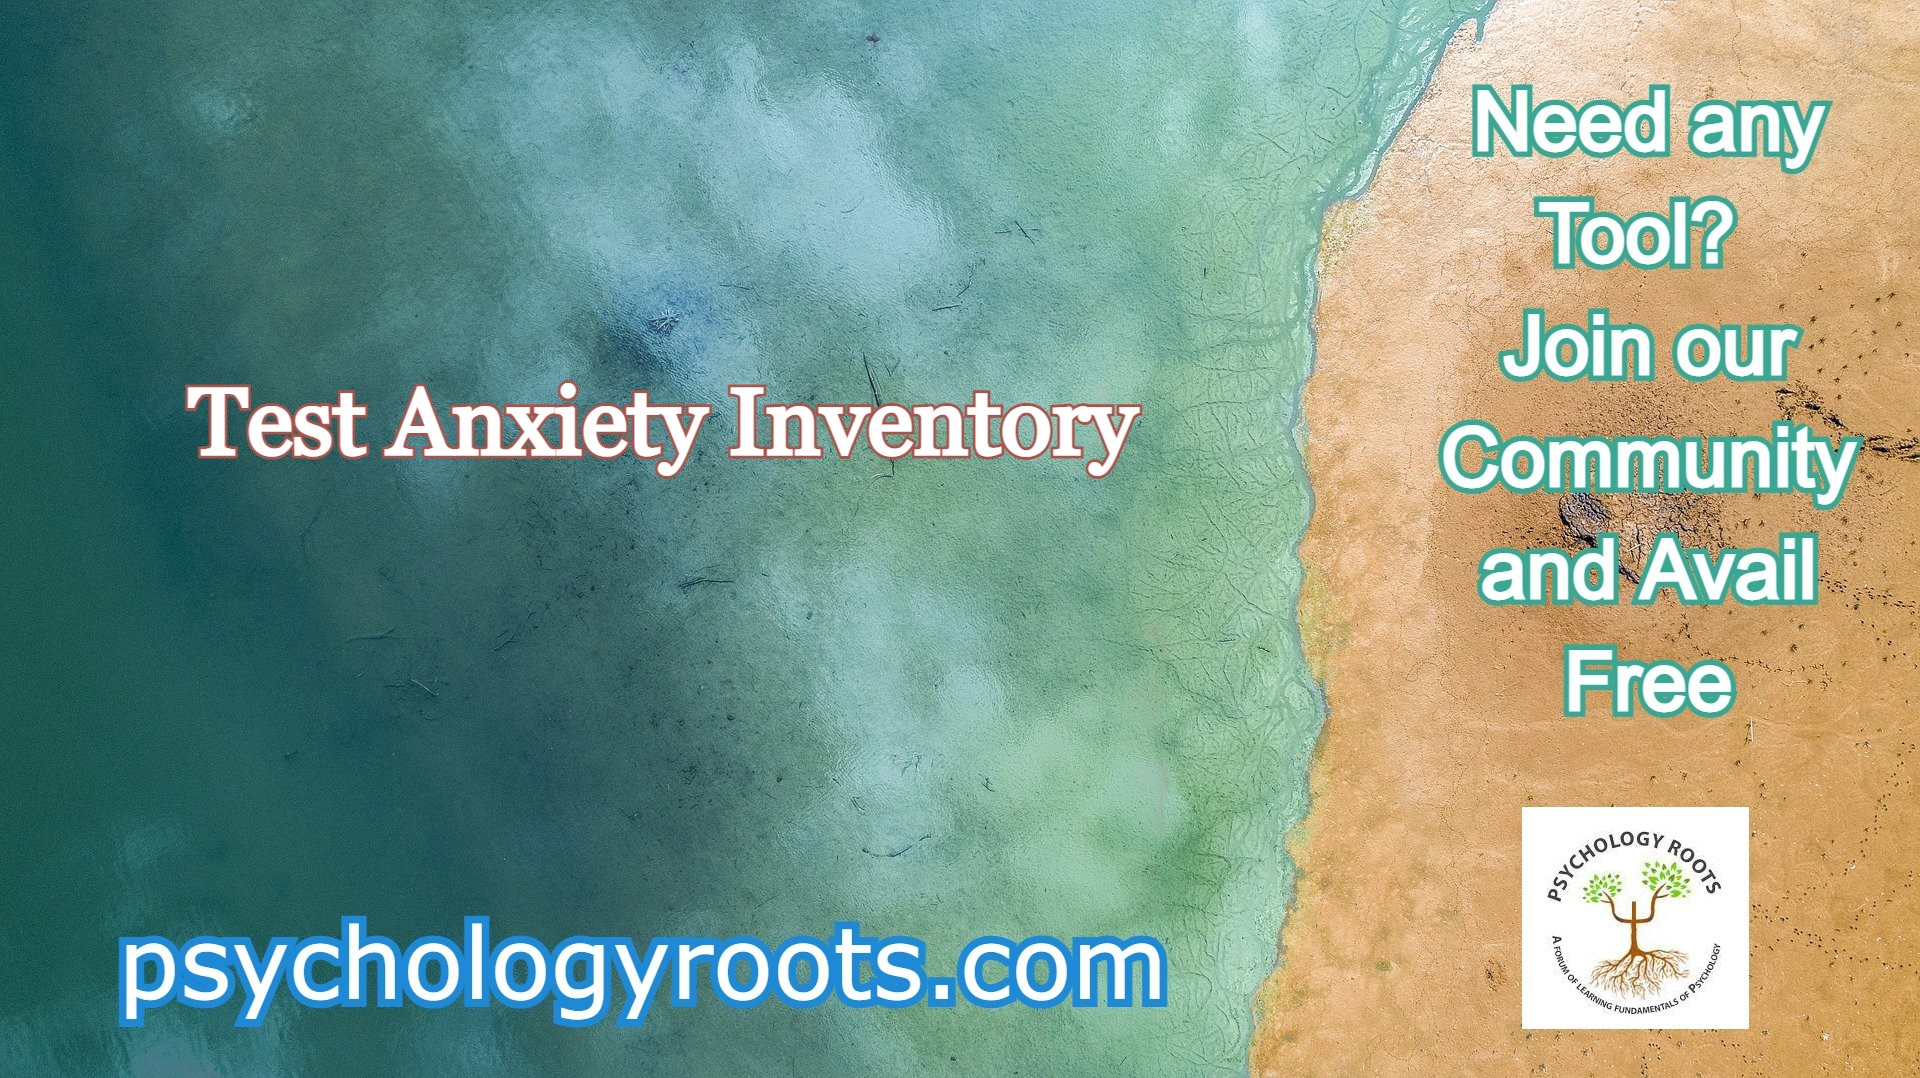 Test Anxiety Inventory